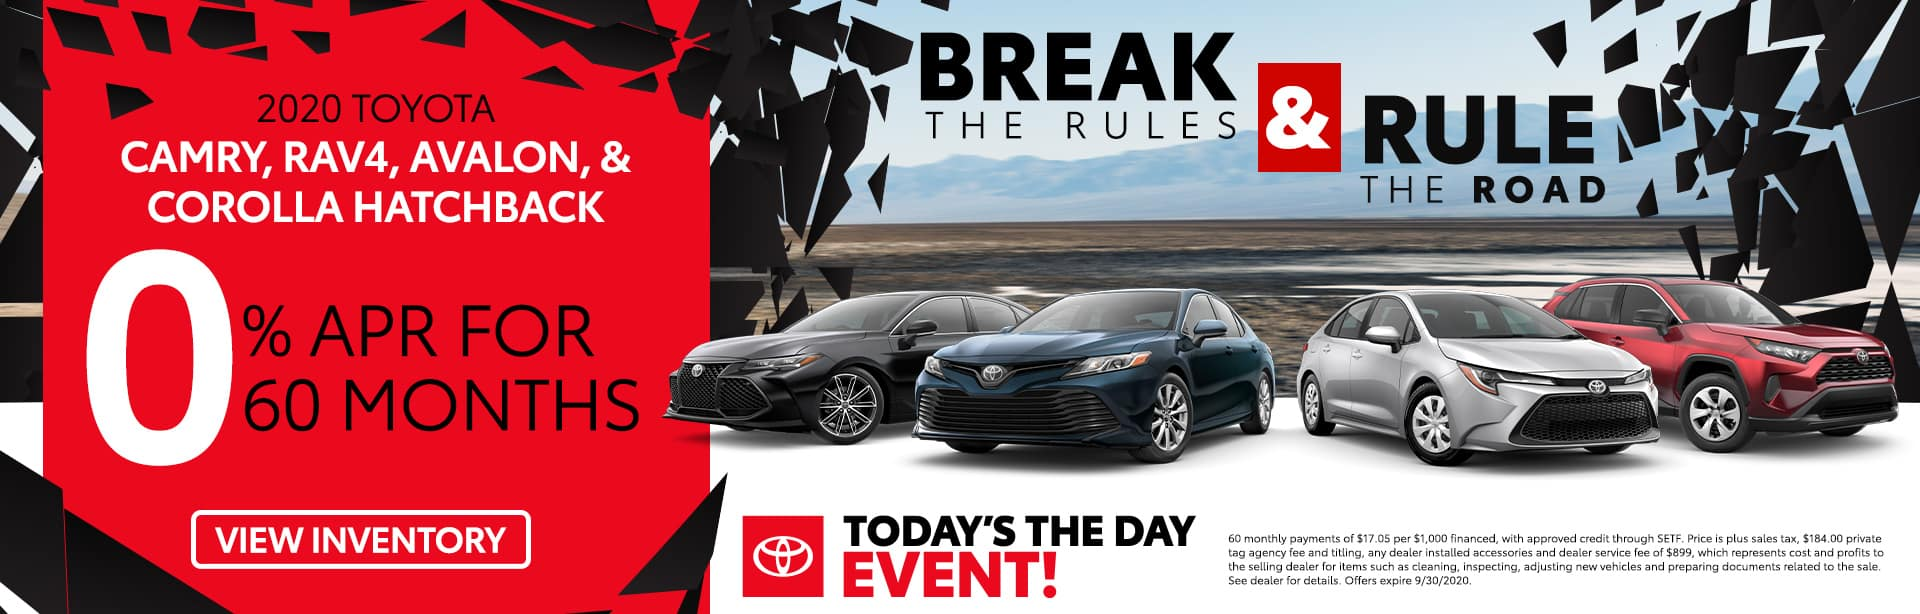 2020 Toyota Camry, RAV4, Avalon & Corolla Hatchback | 0% APR For 60 Months | Today's The Day Event! | Break The Rules & Rule The Road